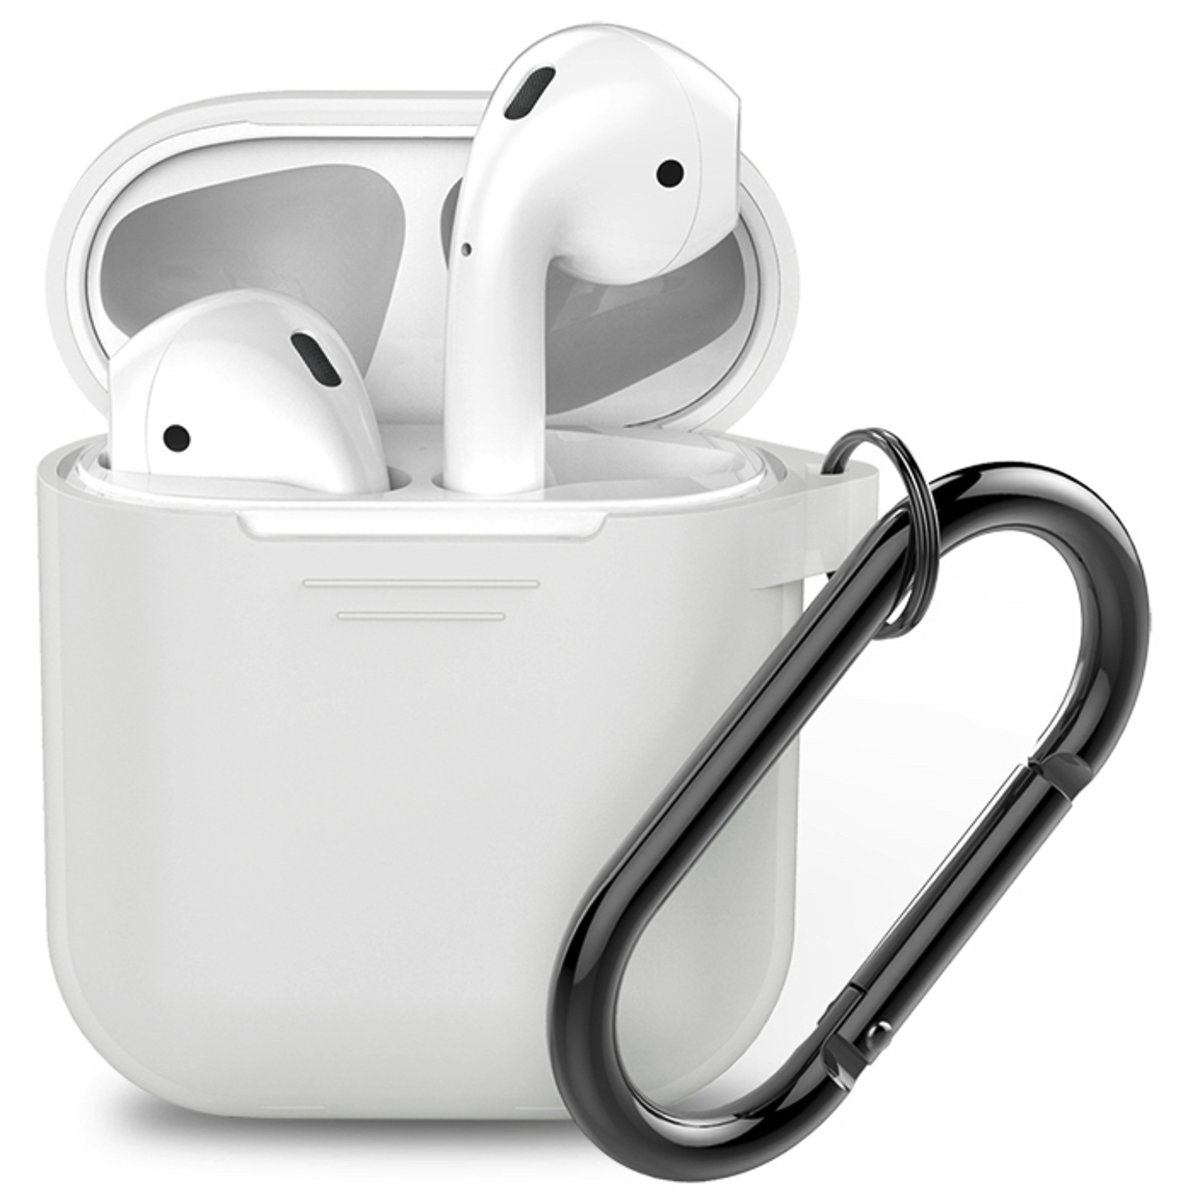 PodFit 2.0  Silicone Case Protective Cover Skin Compatible with Apple AirPods 2 & 1 Frosted Grey